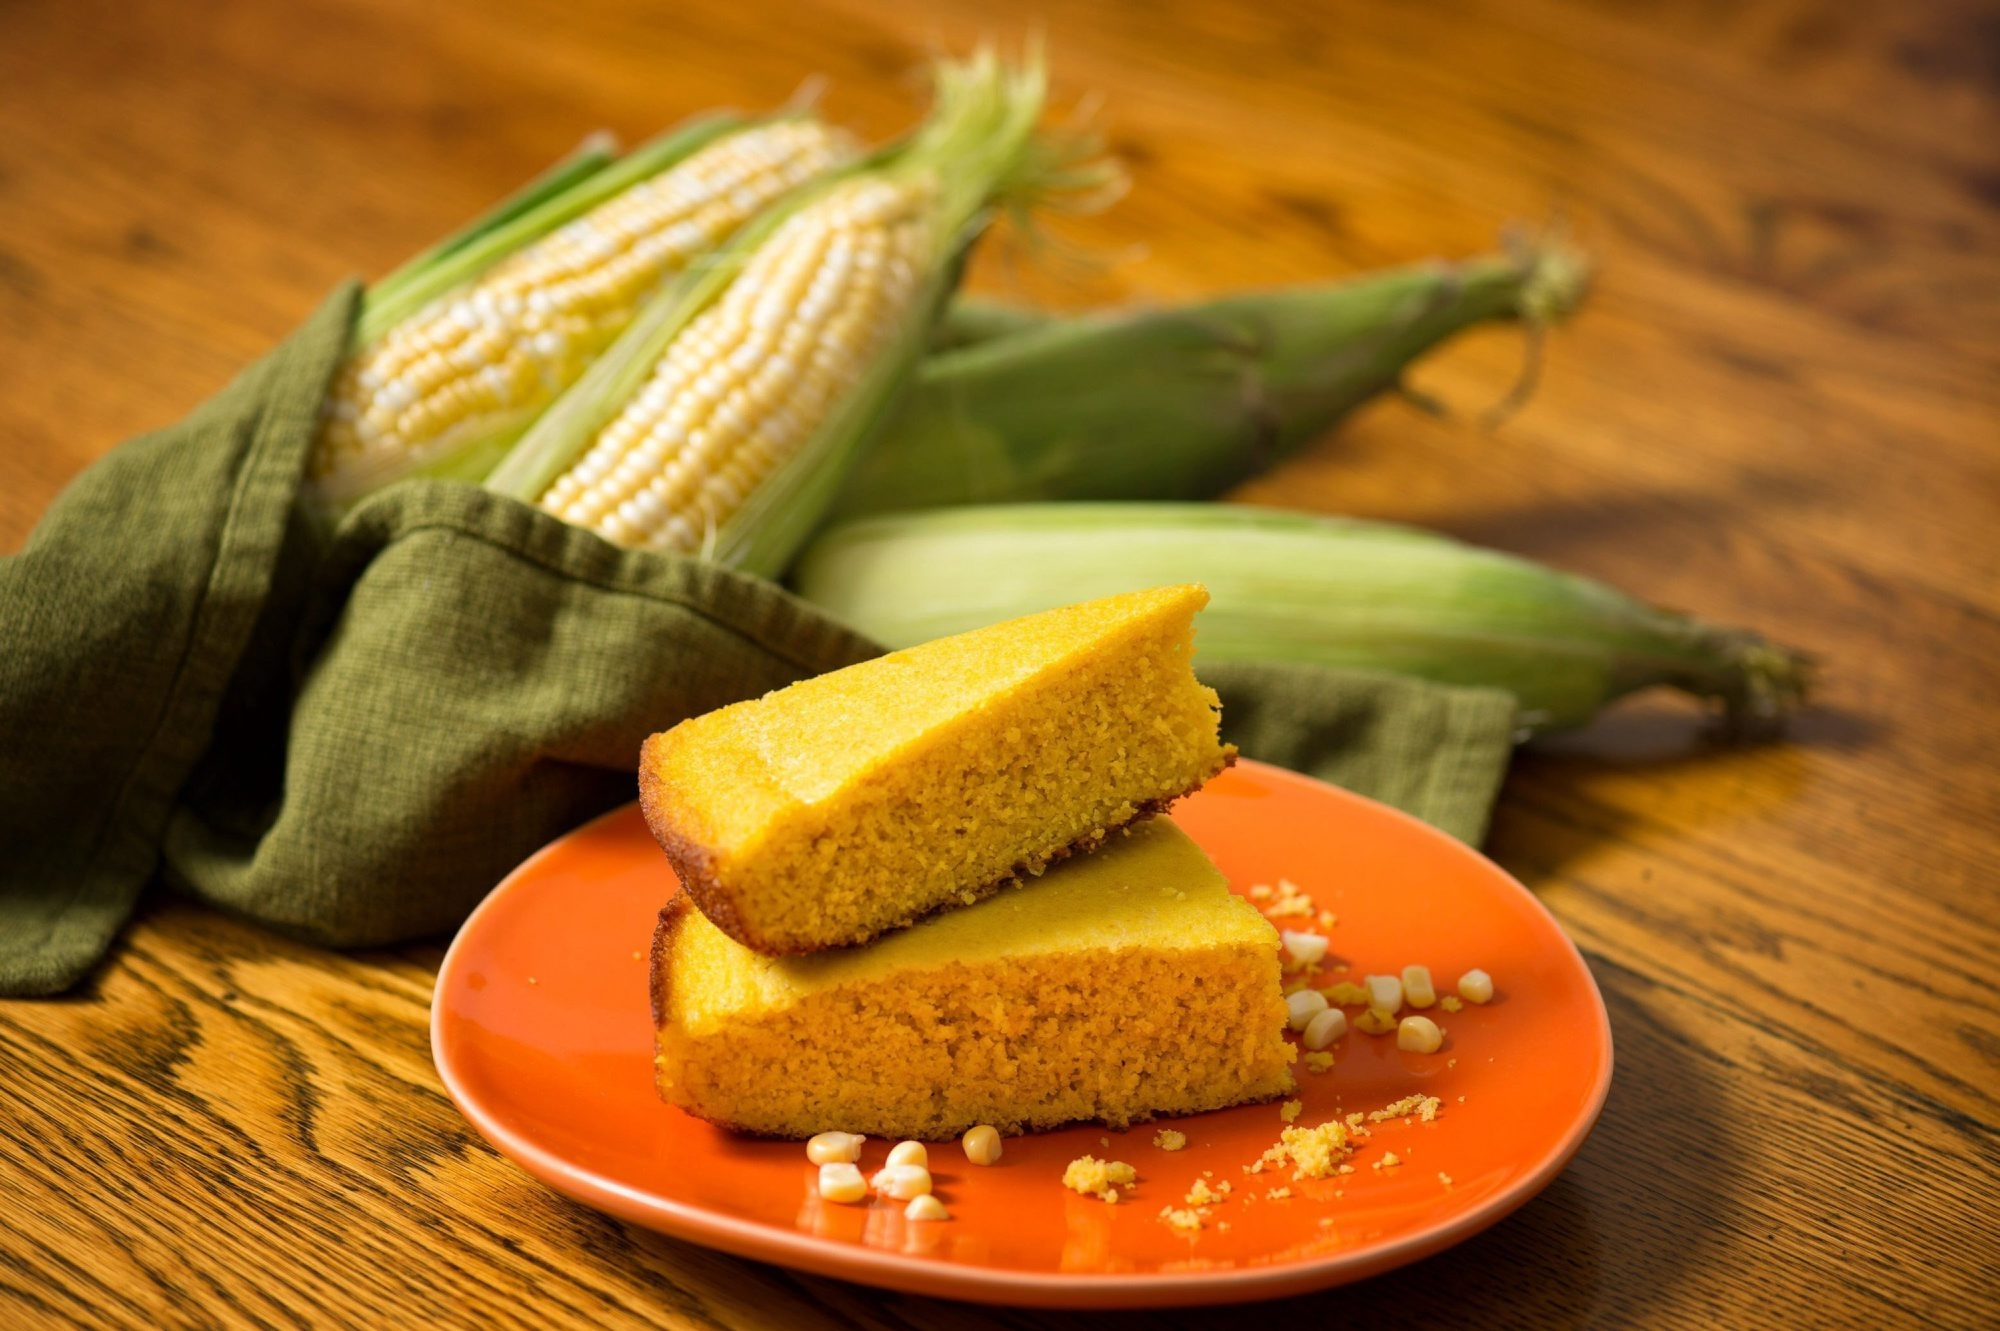 Using only cornmeal makes this cornbread gluten-free. Adding pureed fresh sweet corn boosts the corn flavor, while ensuring a moist bread.